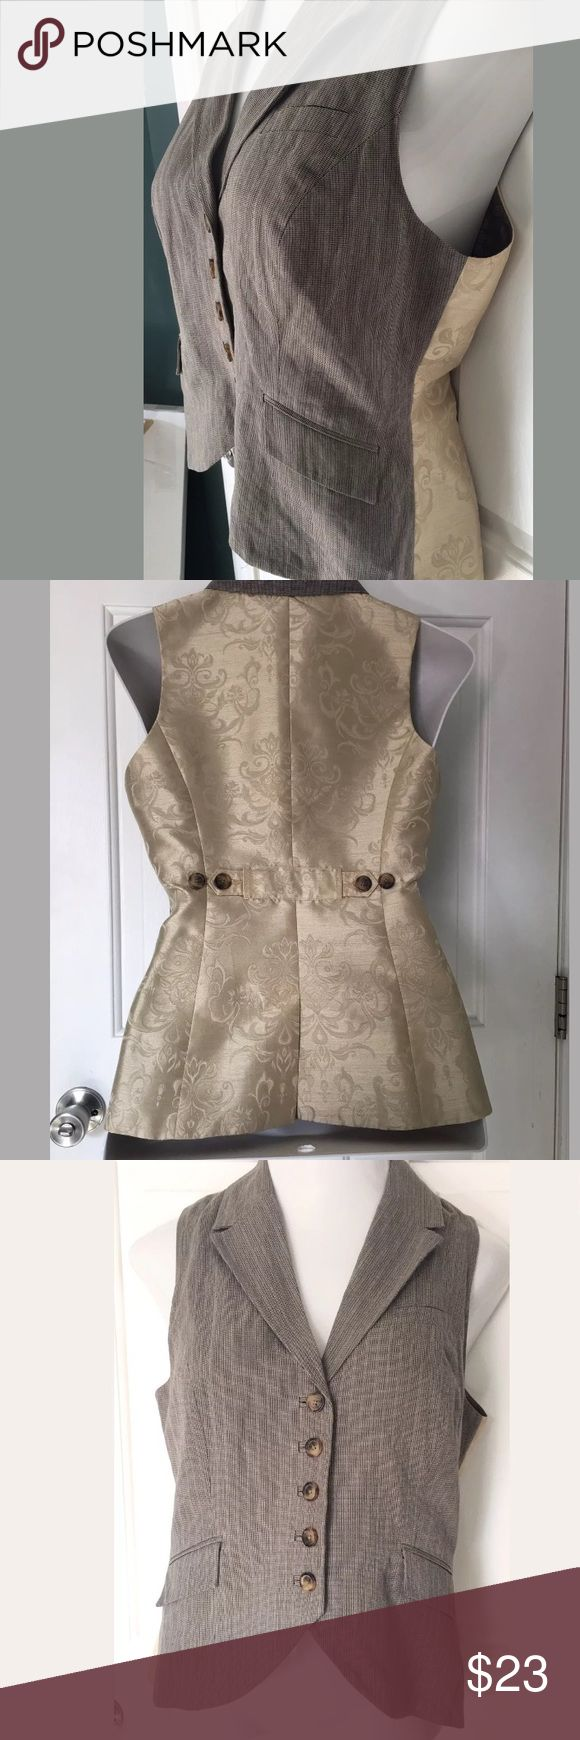 """Women's CAbi Gold Vest Women's Cabi Gold Vest Size M Measurements: Bust: 34-36"""" Length: 24"""" Condition: Excellent  This beautiful vest is made from 95% Cotton and 5% Metal. Vest is beautifully designed inside and out and can be worn with a great variety of looks. Vest is in excellent condition. Thank you for considering this item! CAbi Other"""